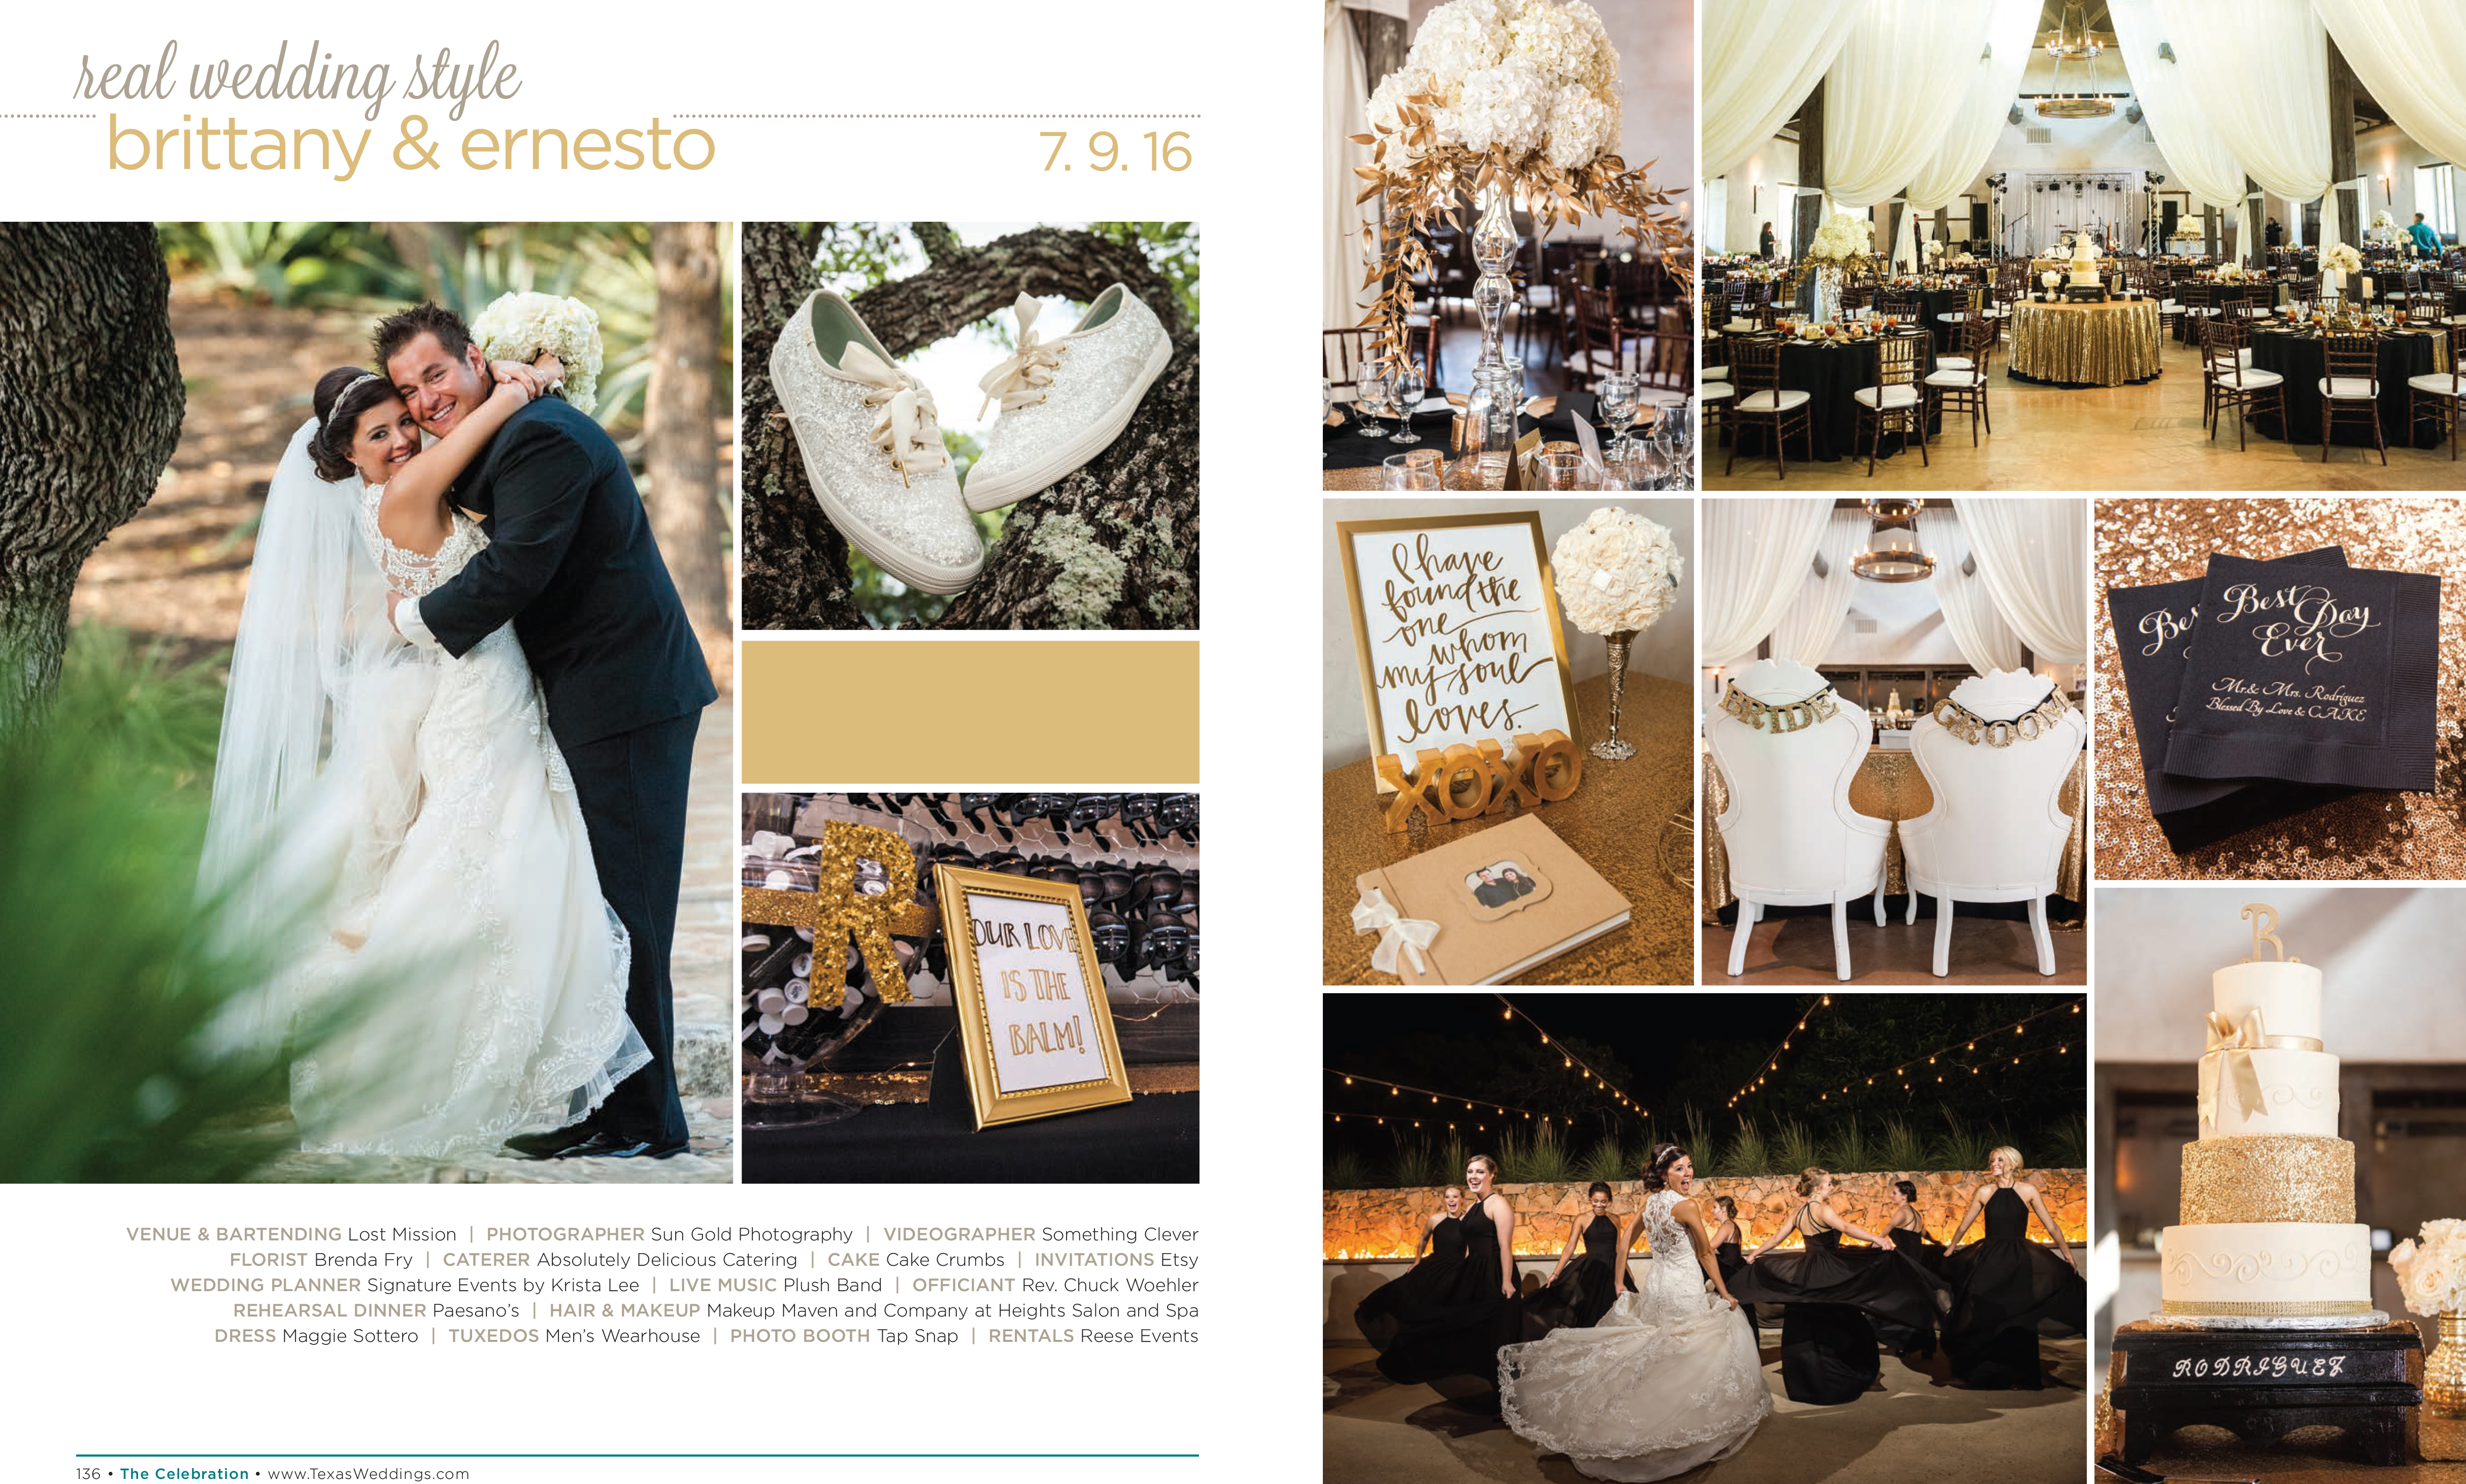 Brittany & Ernesto in their Real Wedding Page in the Spring/Summer 2017 Texas Wedding Guide